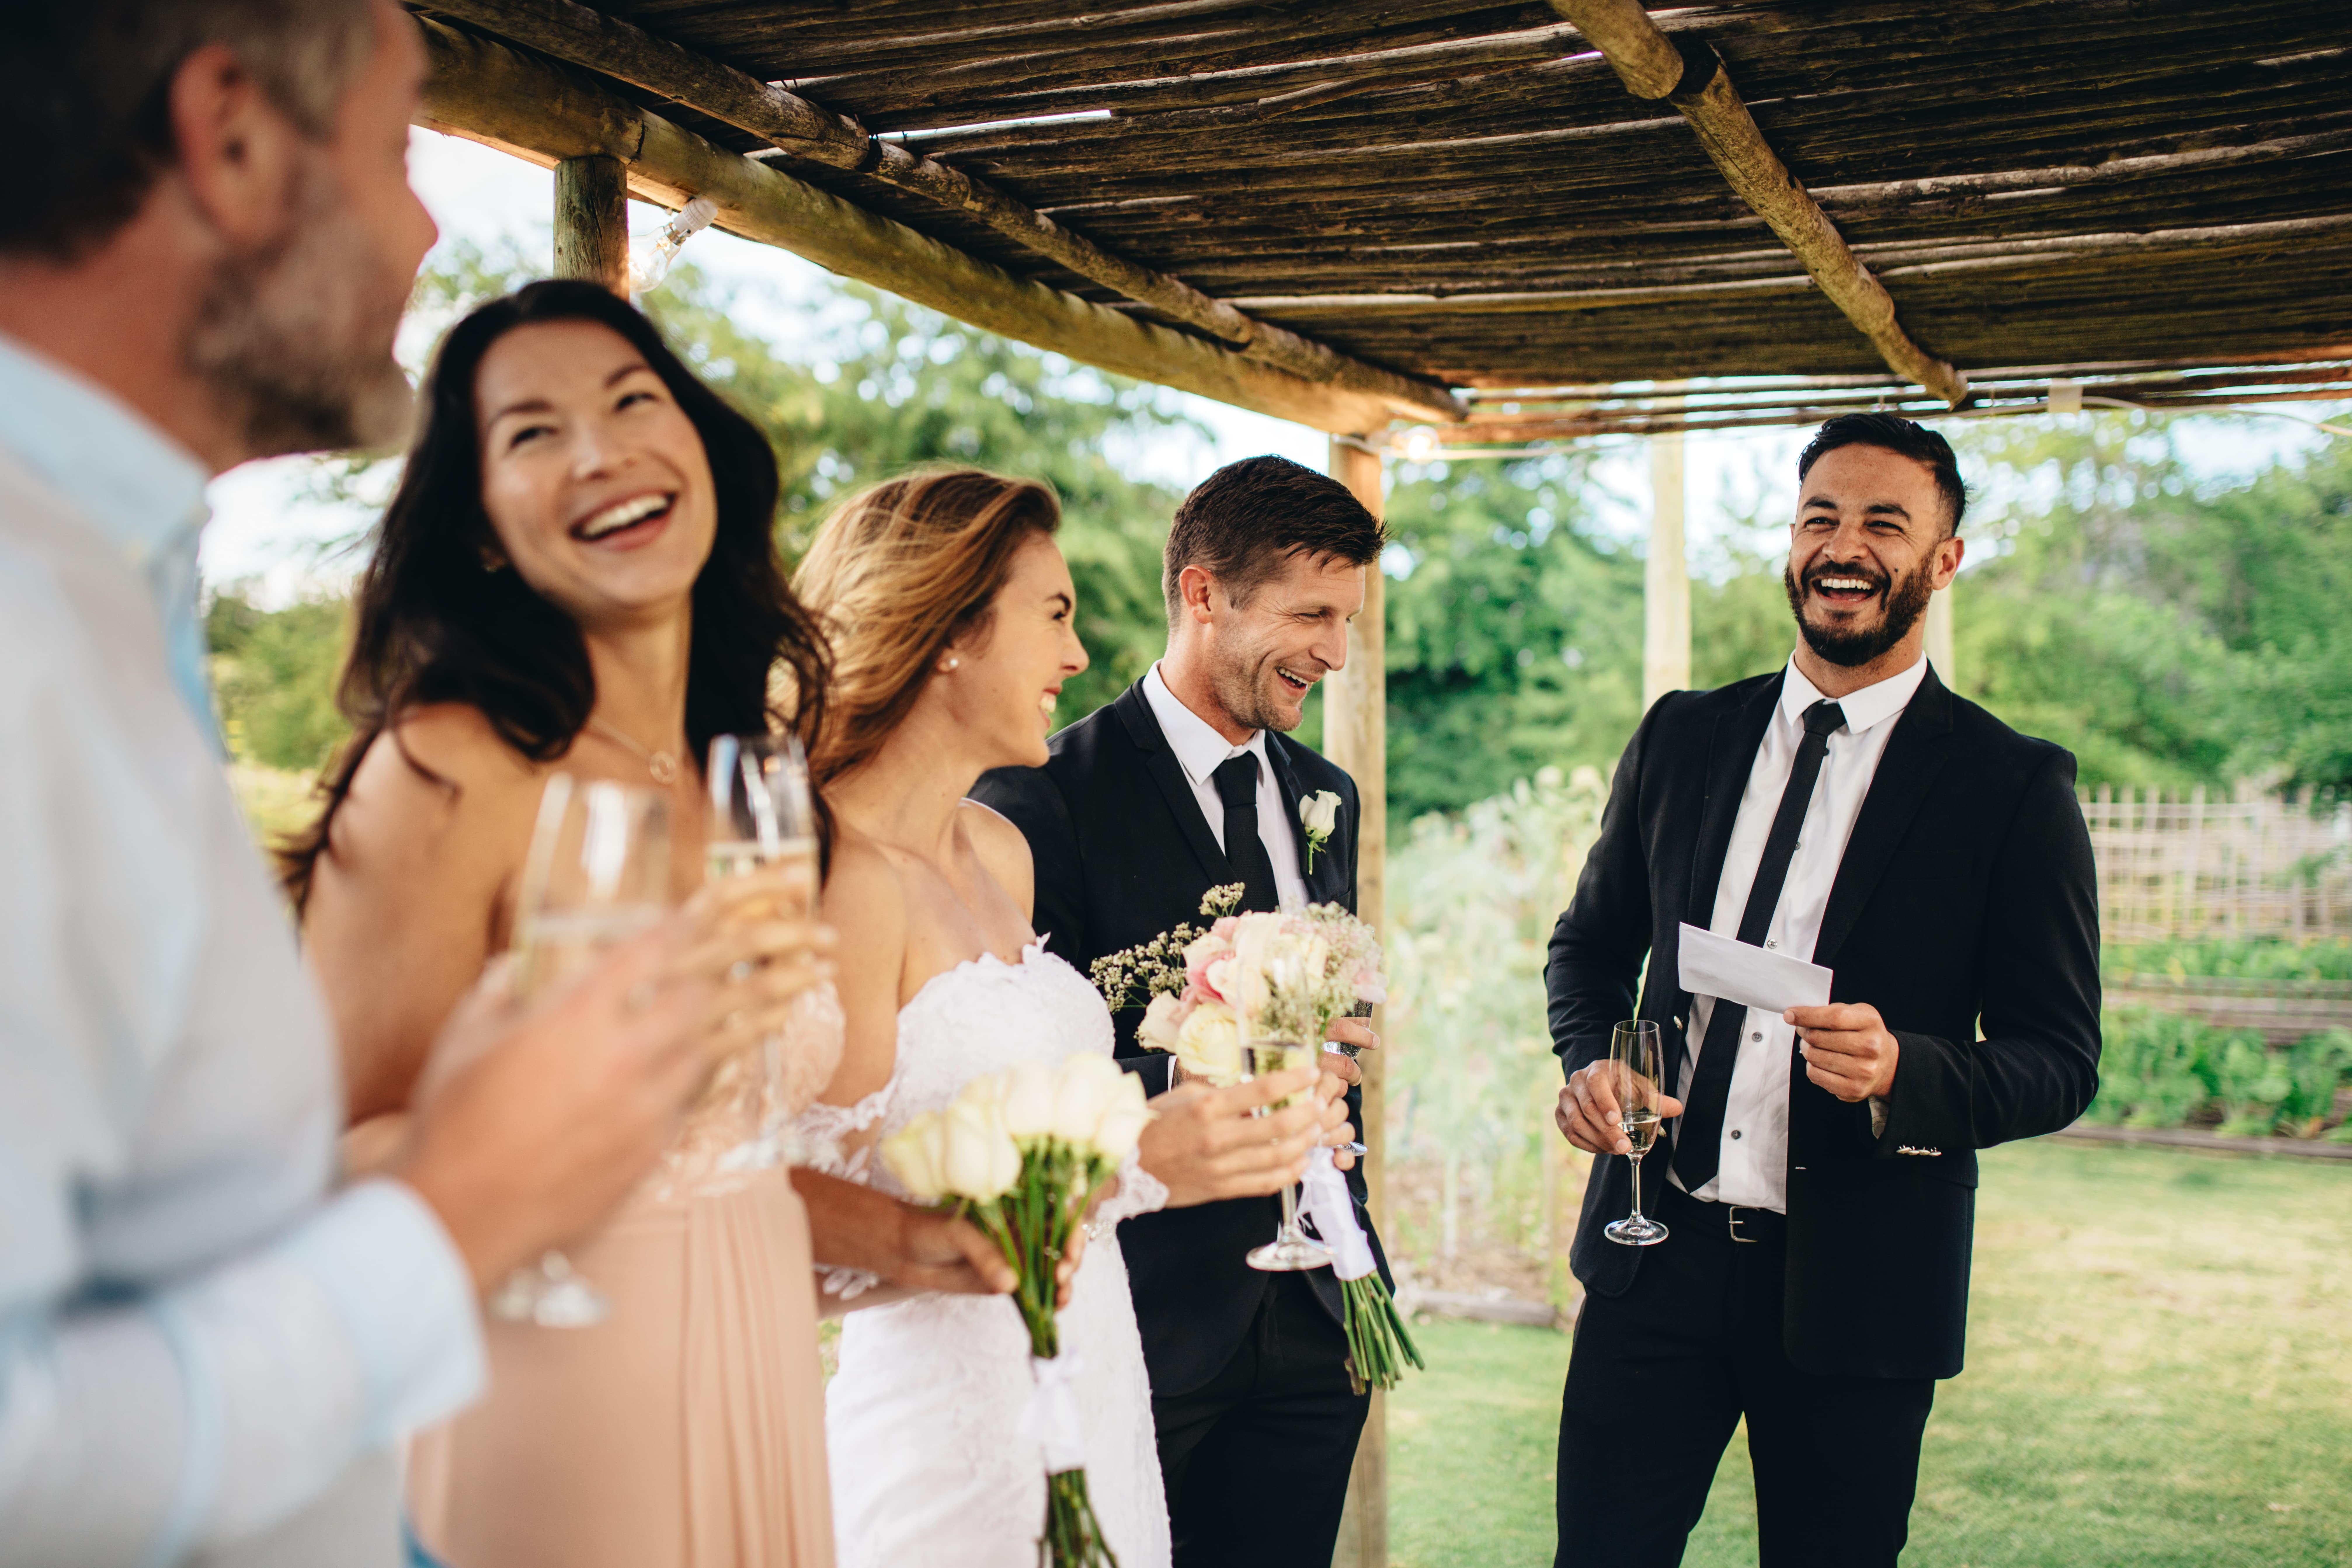 6 Types of Weddings and What to Wear to Them